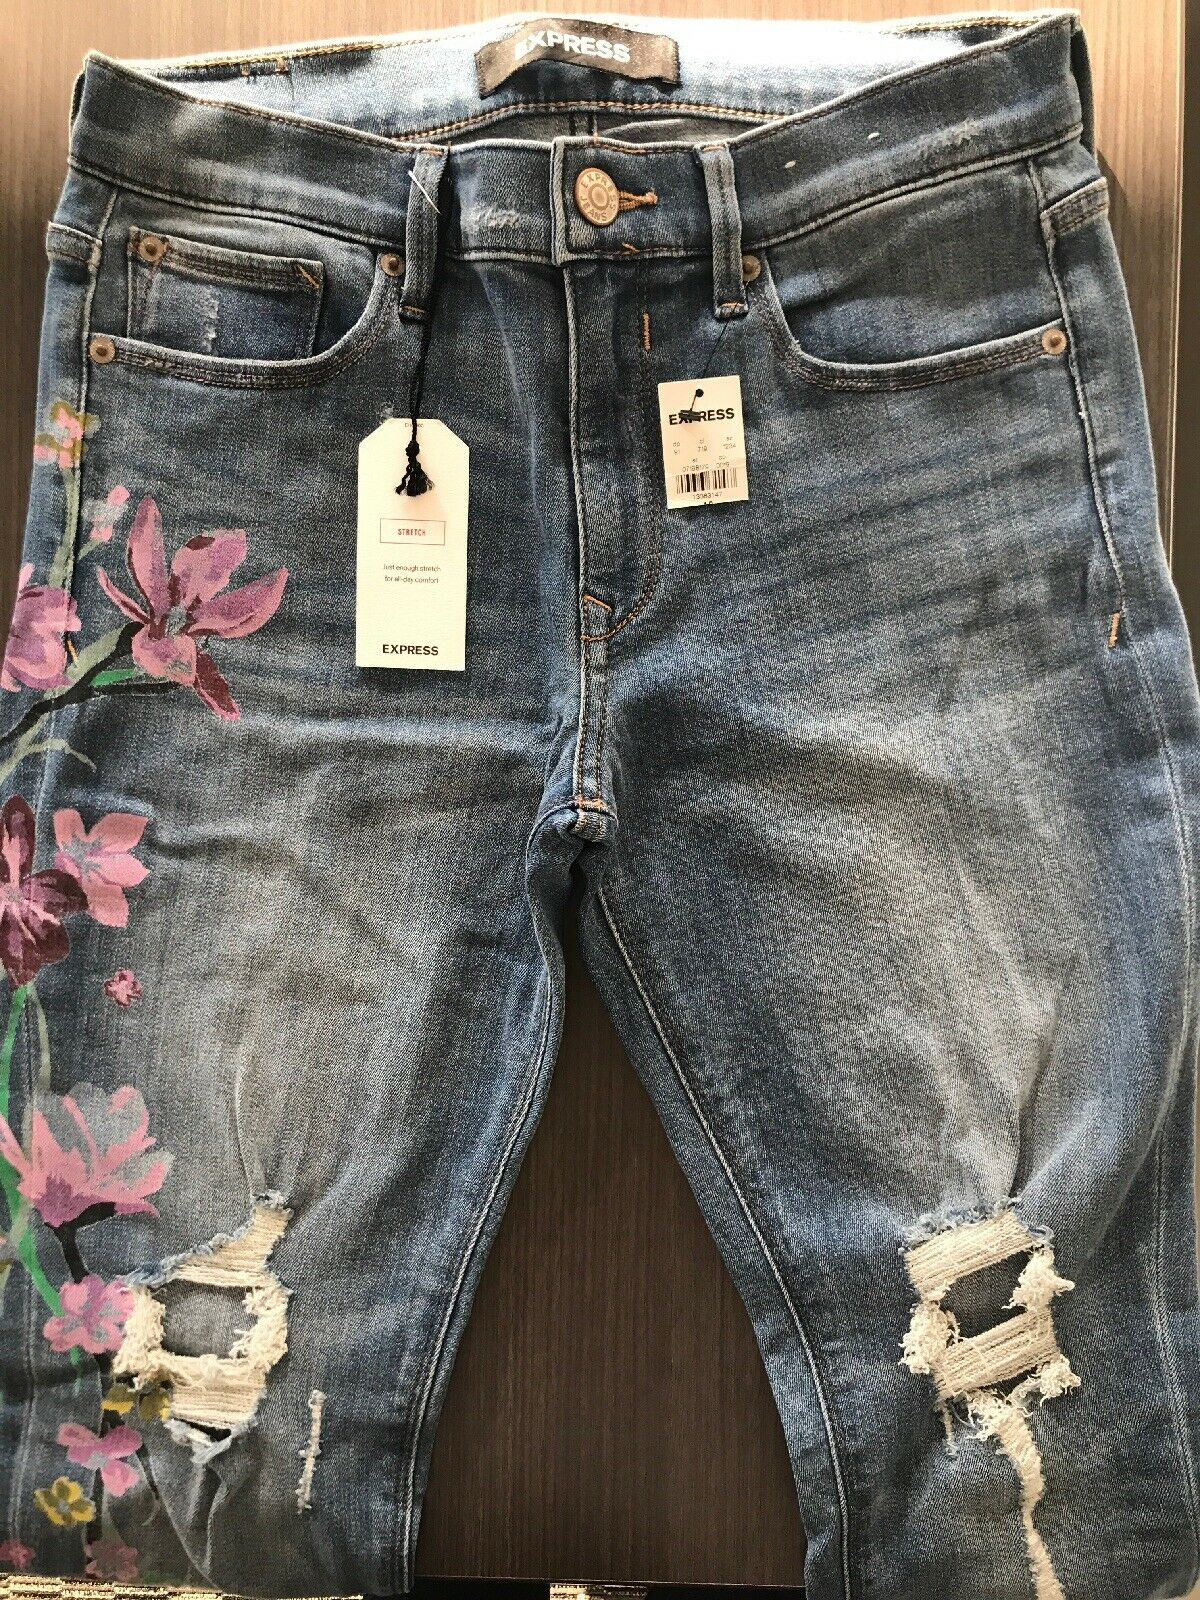 f2805d09531 Express Legging Mid Rise 4R Stretch+ Jeans Jeans Jeans with Painted Flowers  98 0606b3